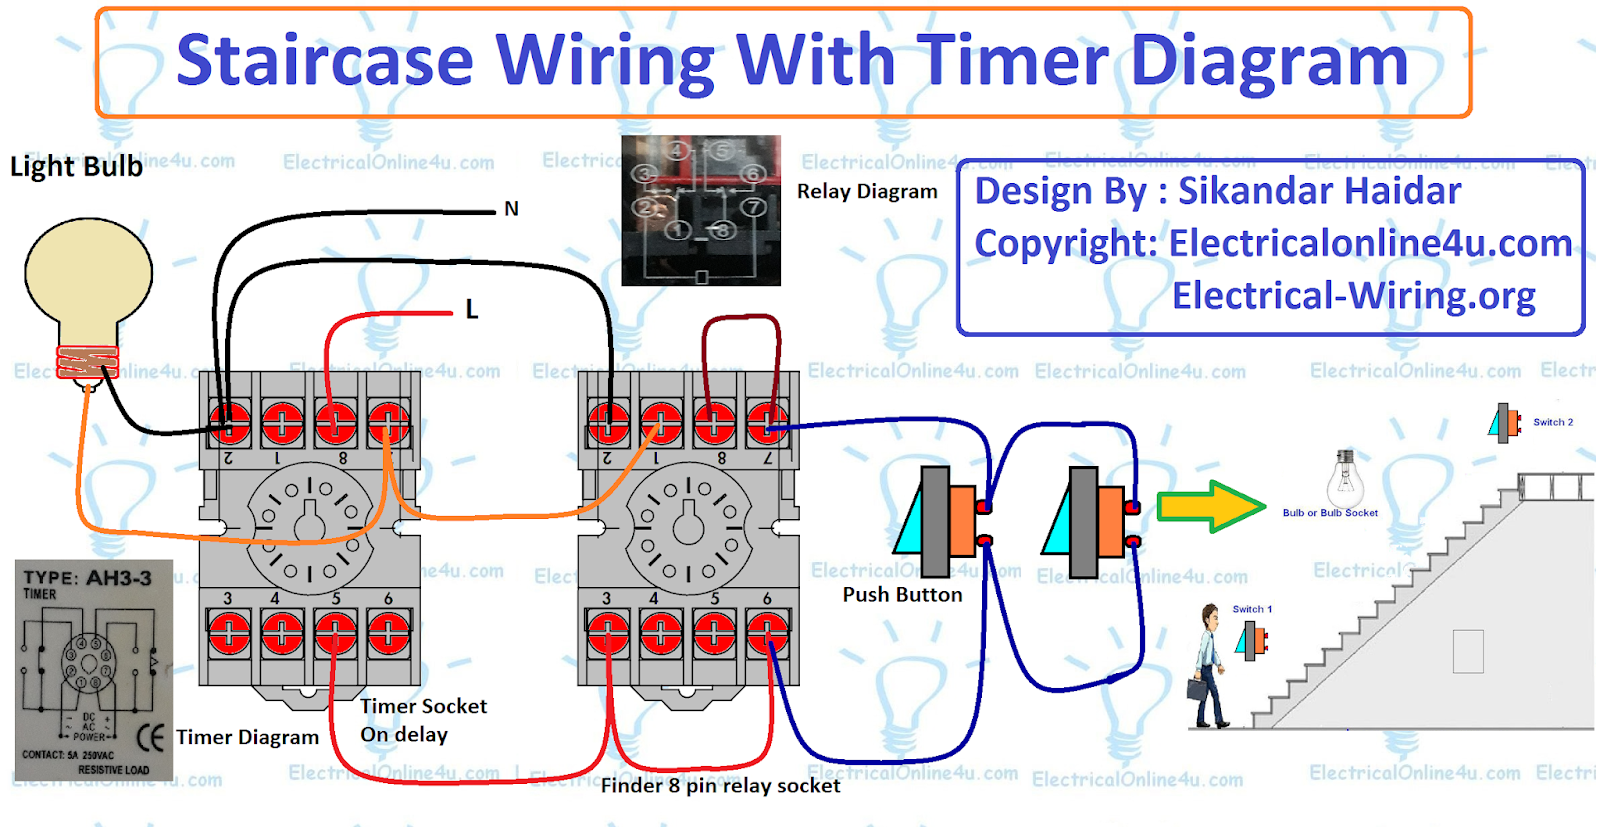 wire diagram for timer wiring diagram info show timer wiring 3 wires [ 1600 x 827 Pixel ]